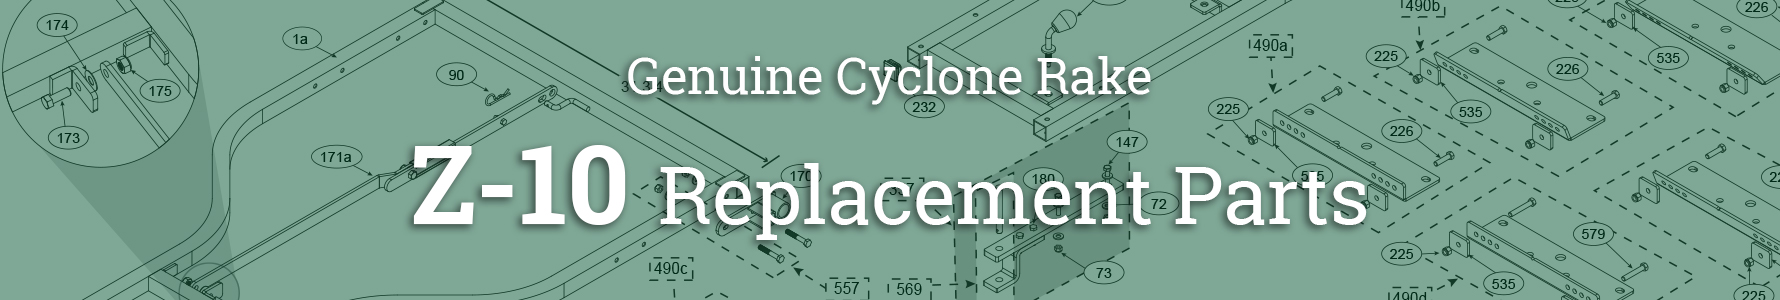 Cyclone Rake Parts for the Z-10  large lawn vacuum